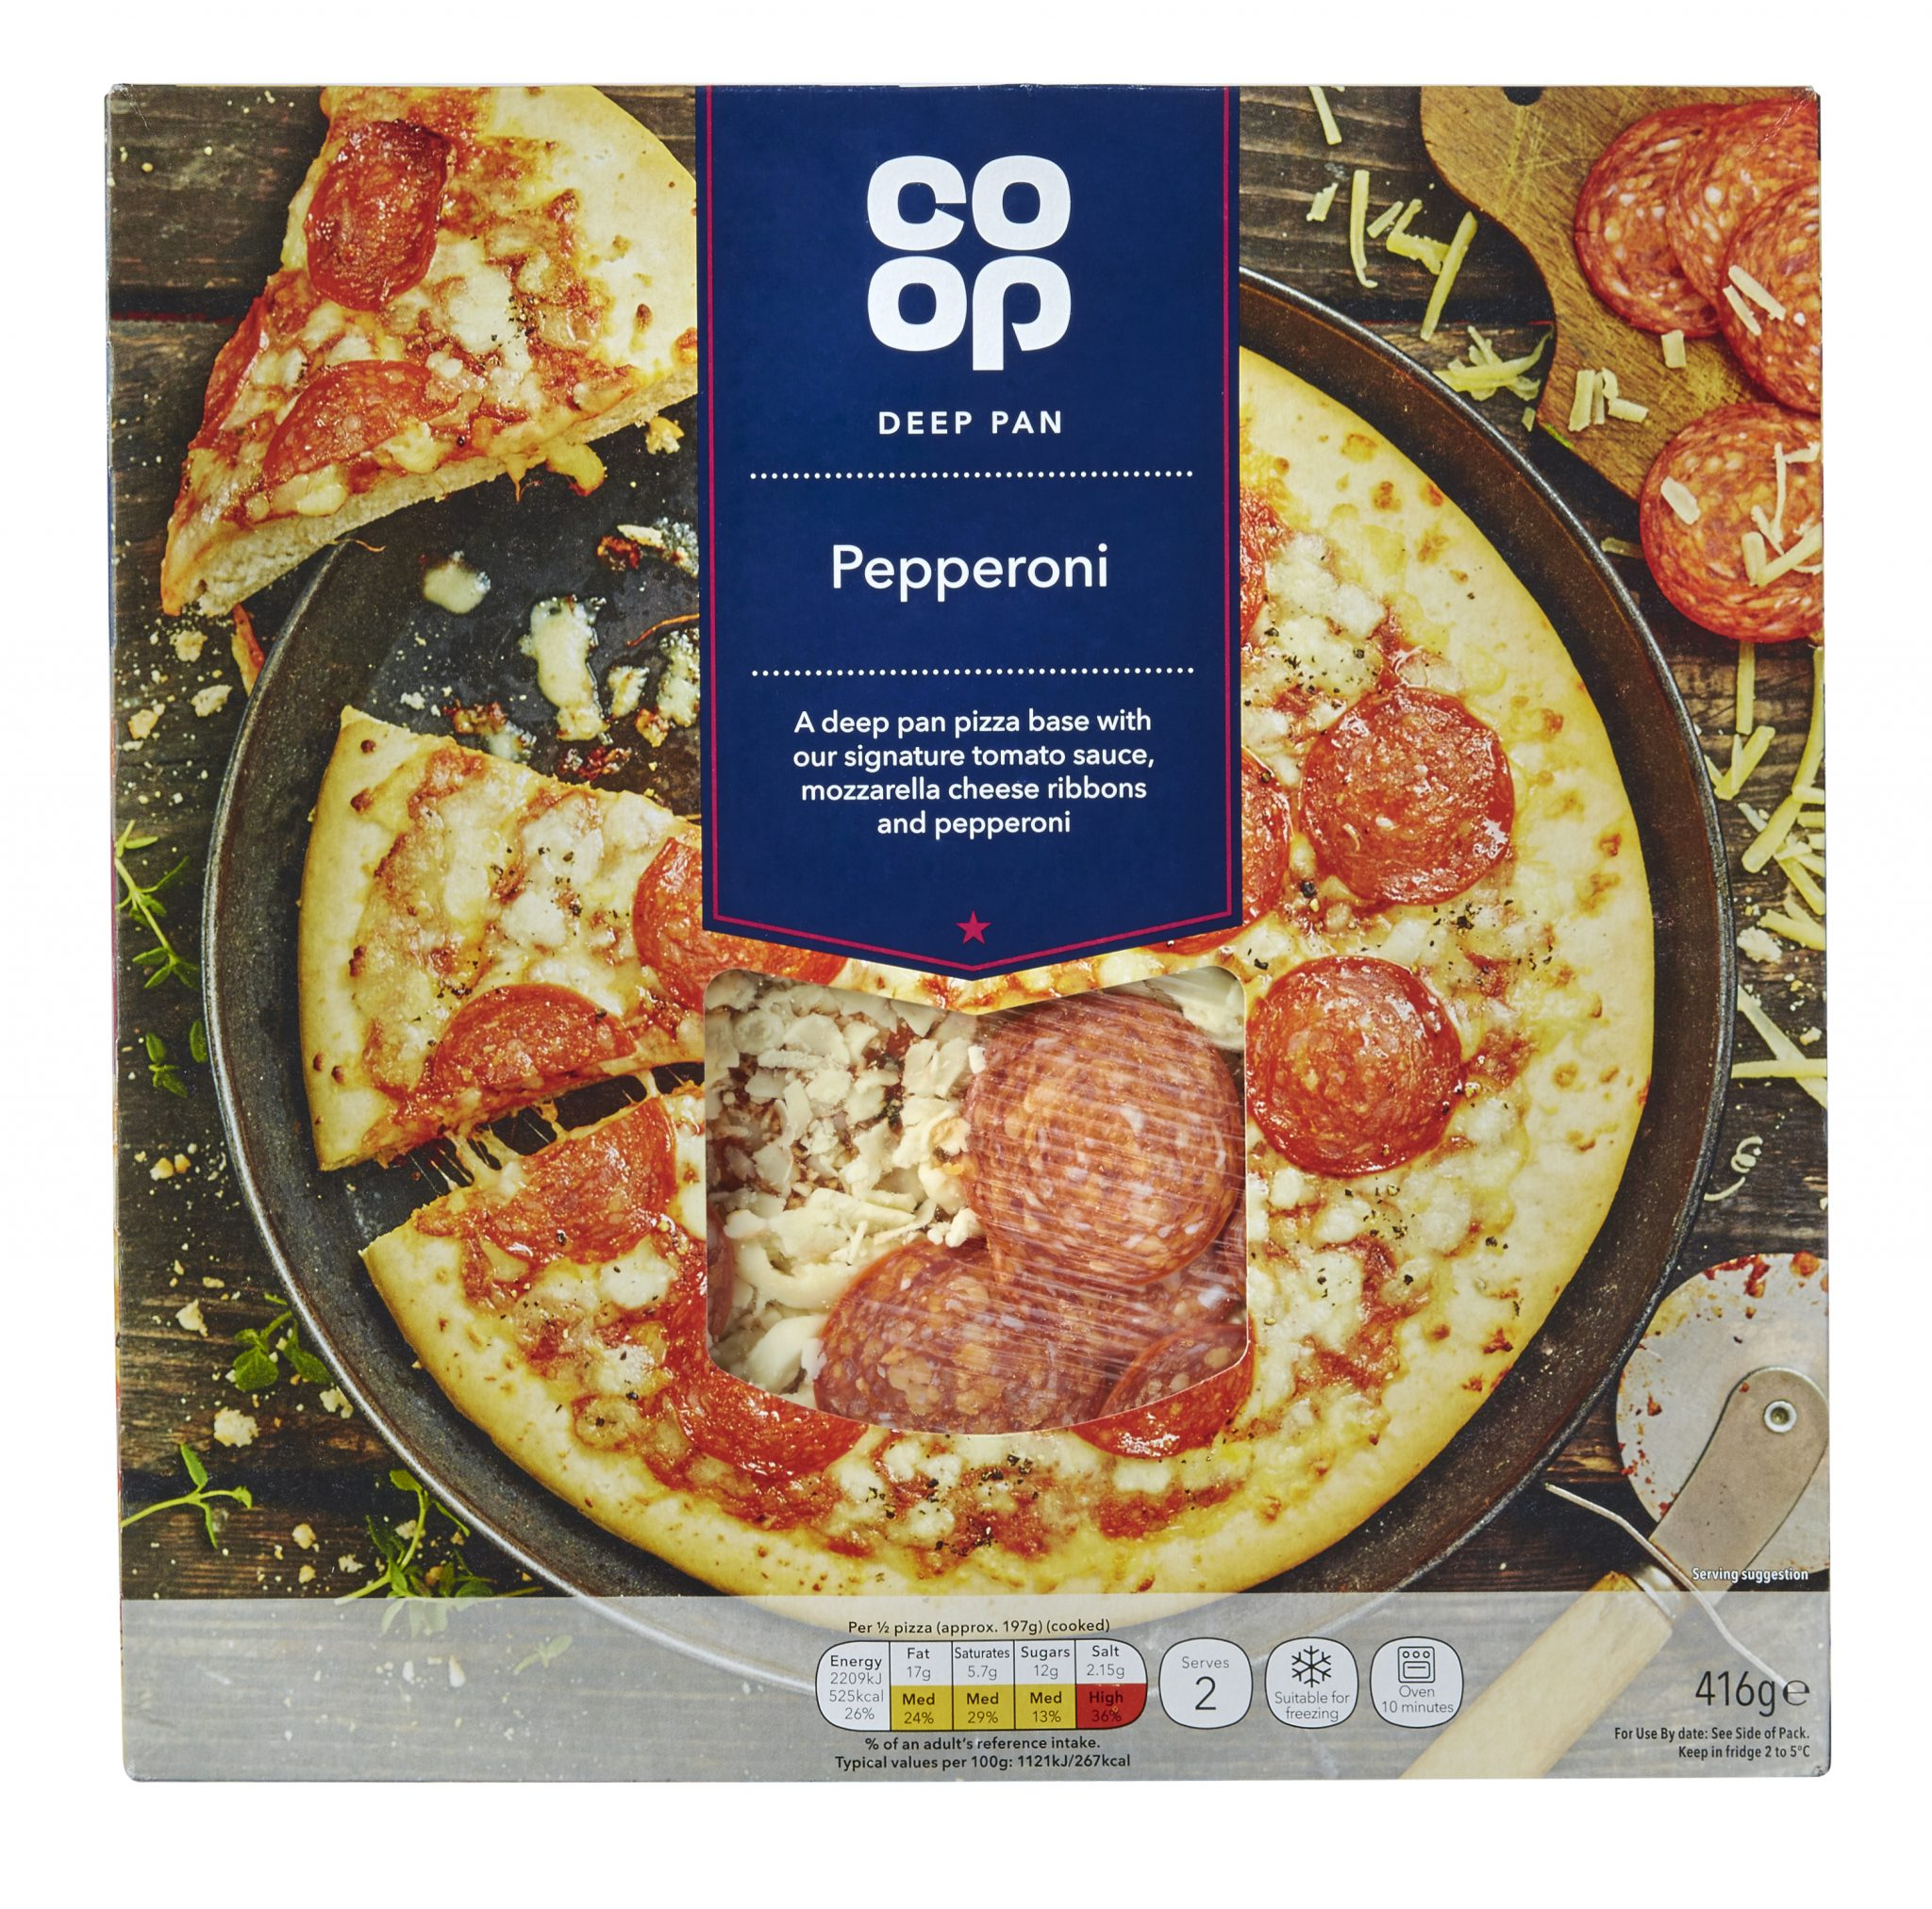 Co Op Group Replaces Polystyrene Pizza Discs With Recyclable Cardboard Co Operative News